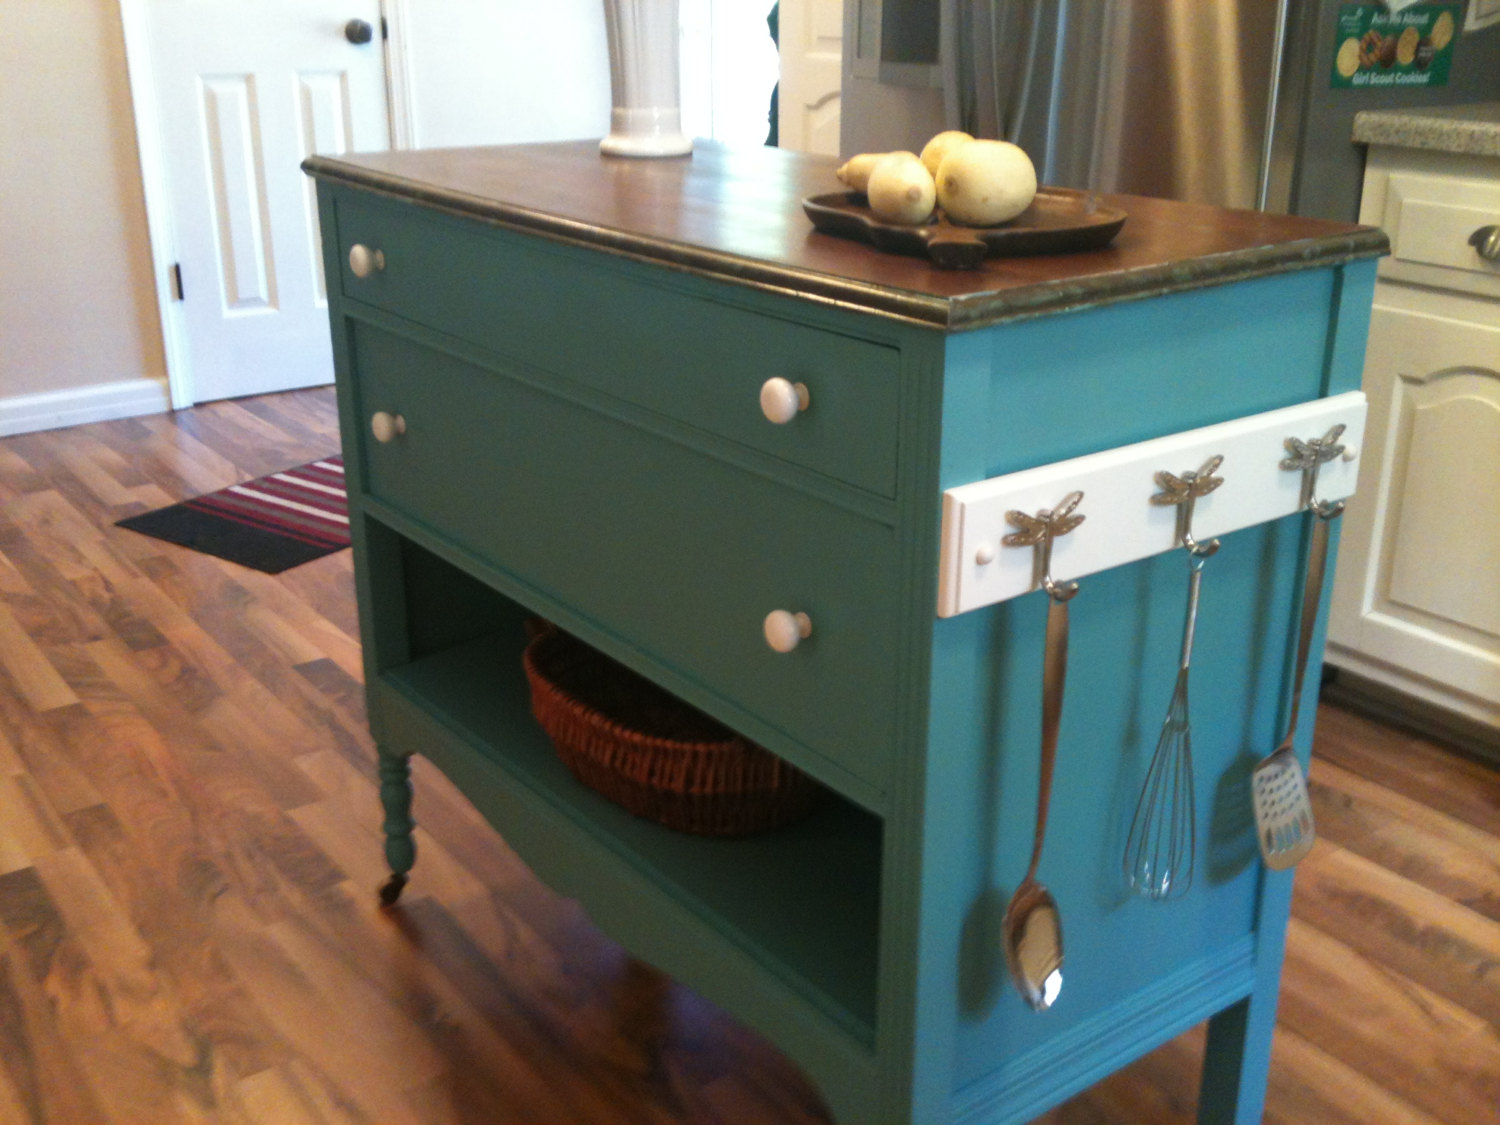 Make a DIY Island using a Dresser - Frugal Living for Life